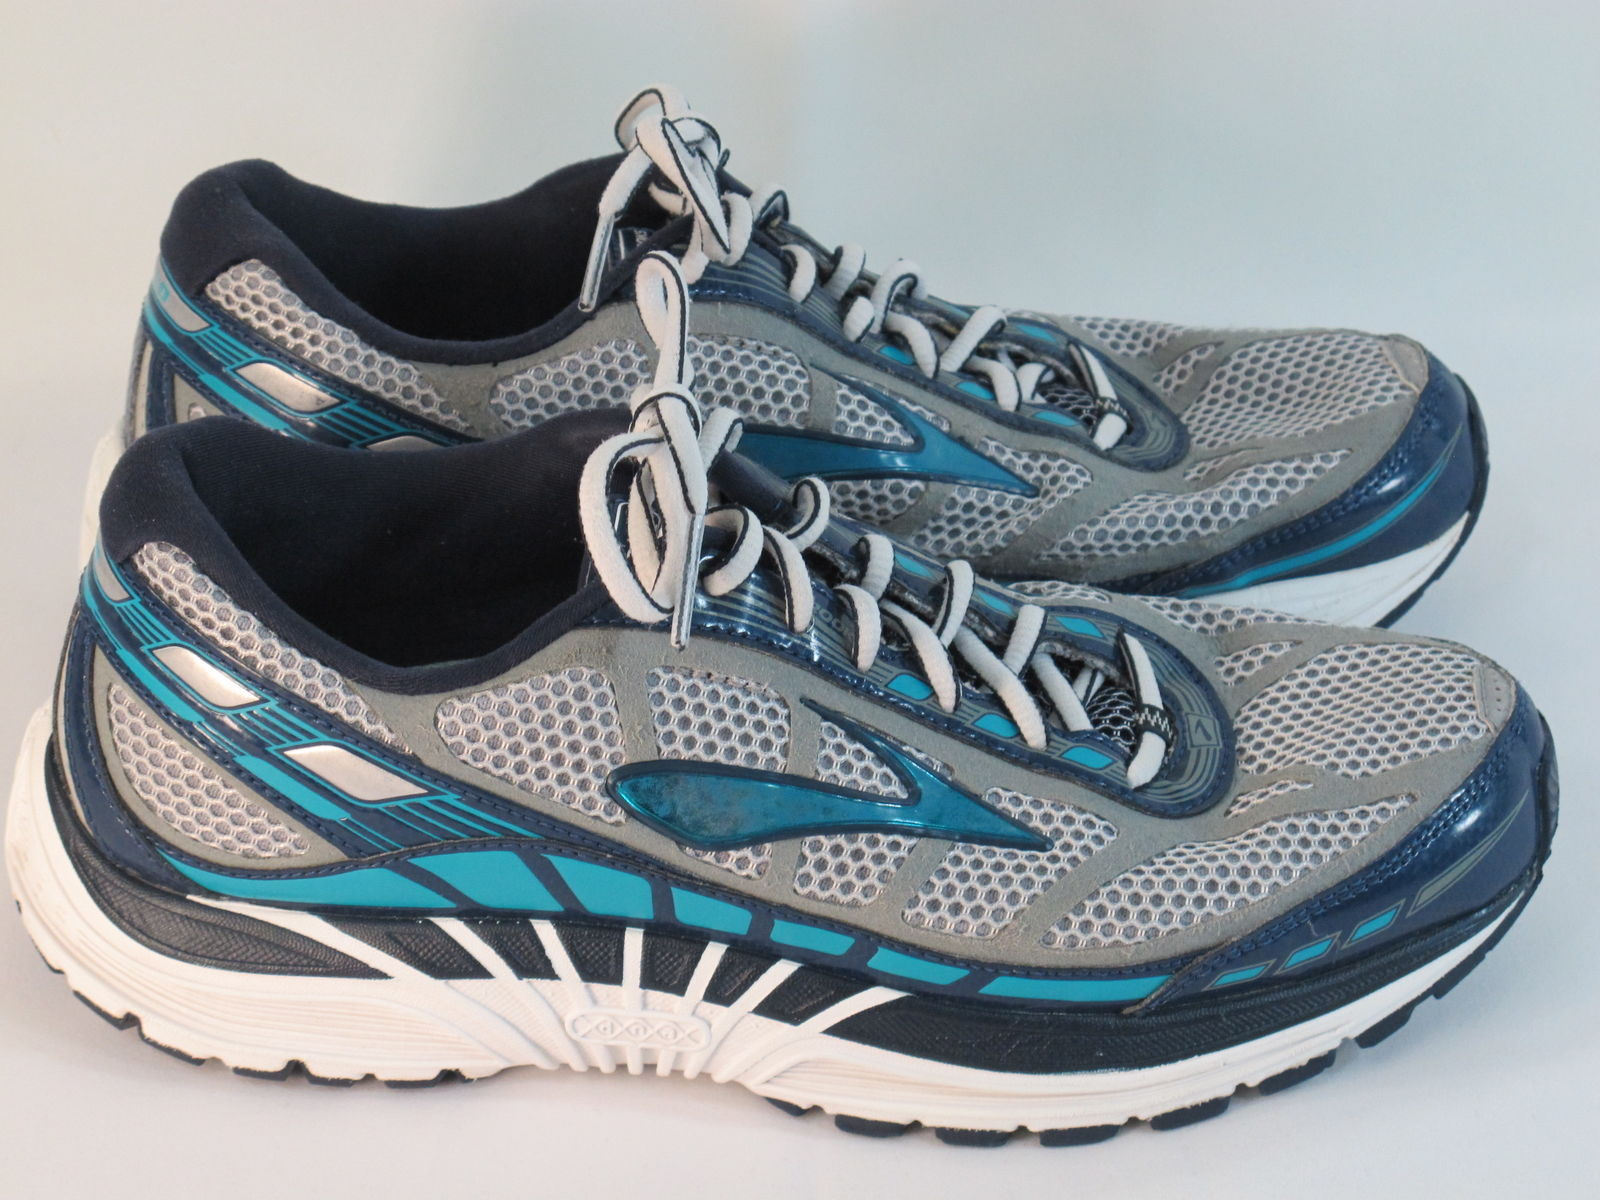 480e81c5755 Brooks Dyad 8 Running Shoes Women s Size 9.5 and 50 similar items. S l1600